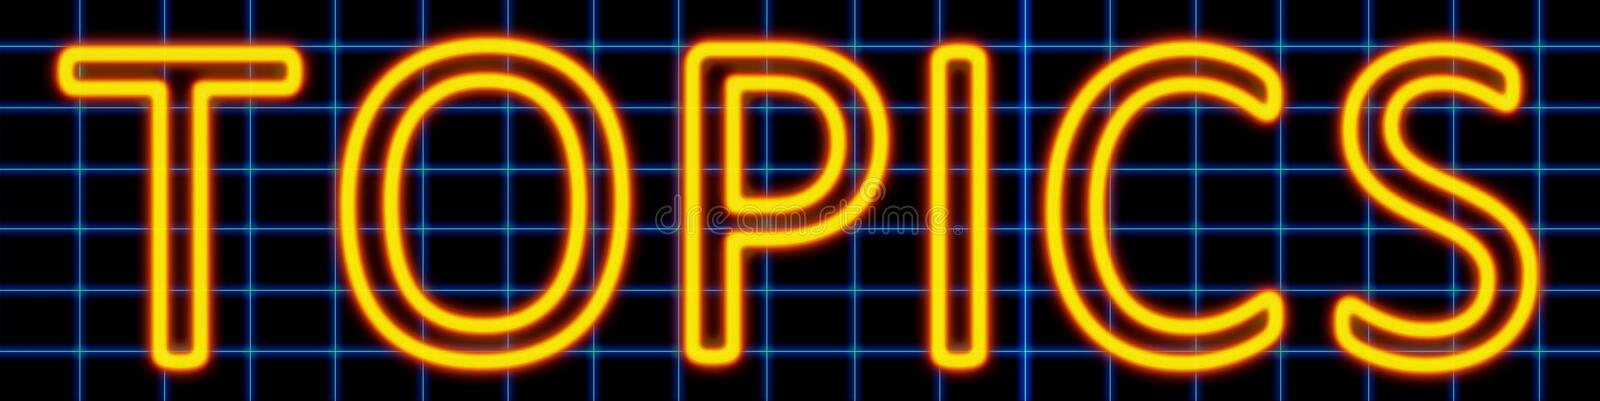 Topics neon sign. Abstract 3d rendered words topics yellow neon sign on blue wire background royalty free illustration